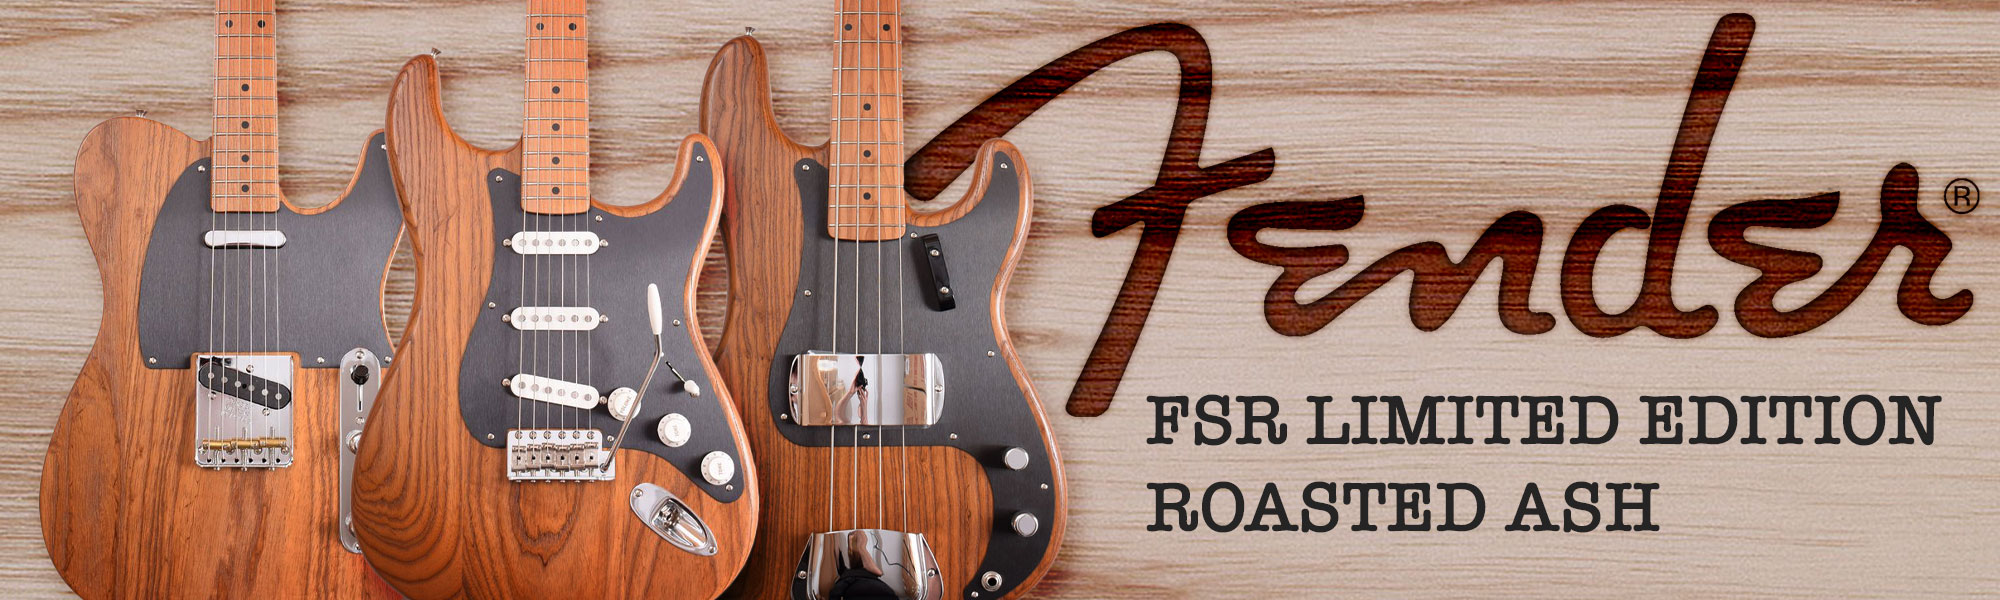 Fender fsr ltd ed roasted ash